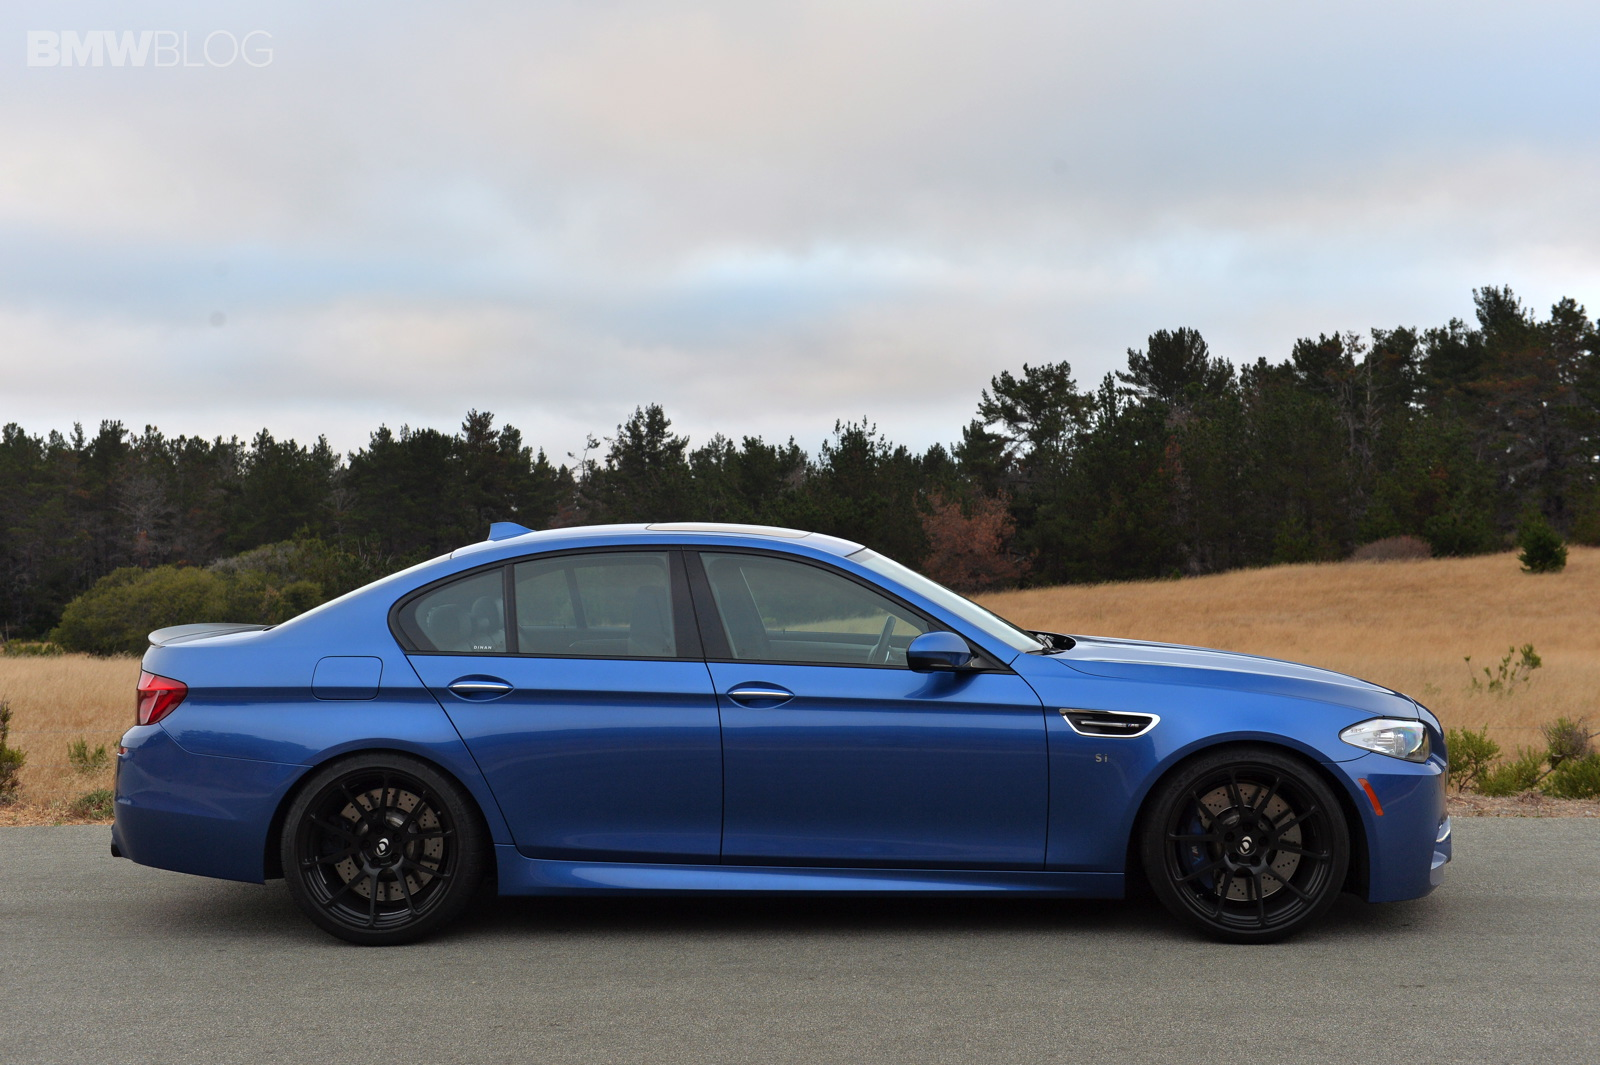 Dinan launches BMW S1 M5 with 675 horsepower